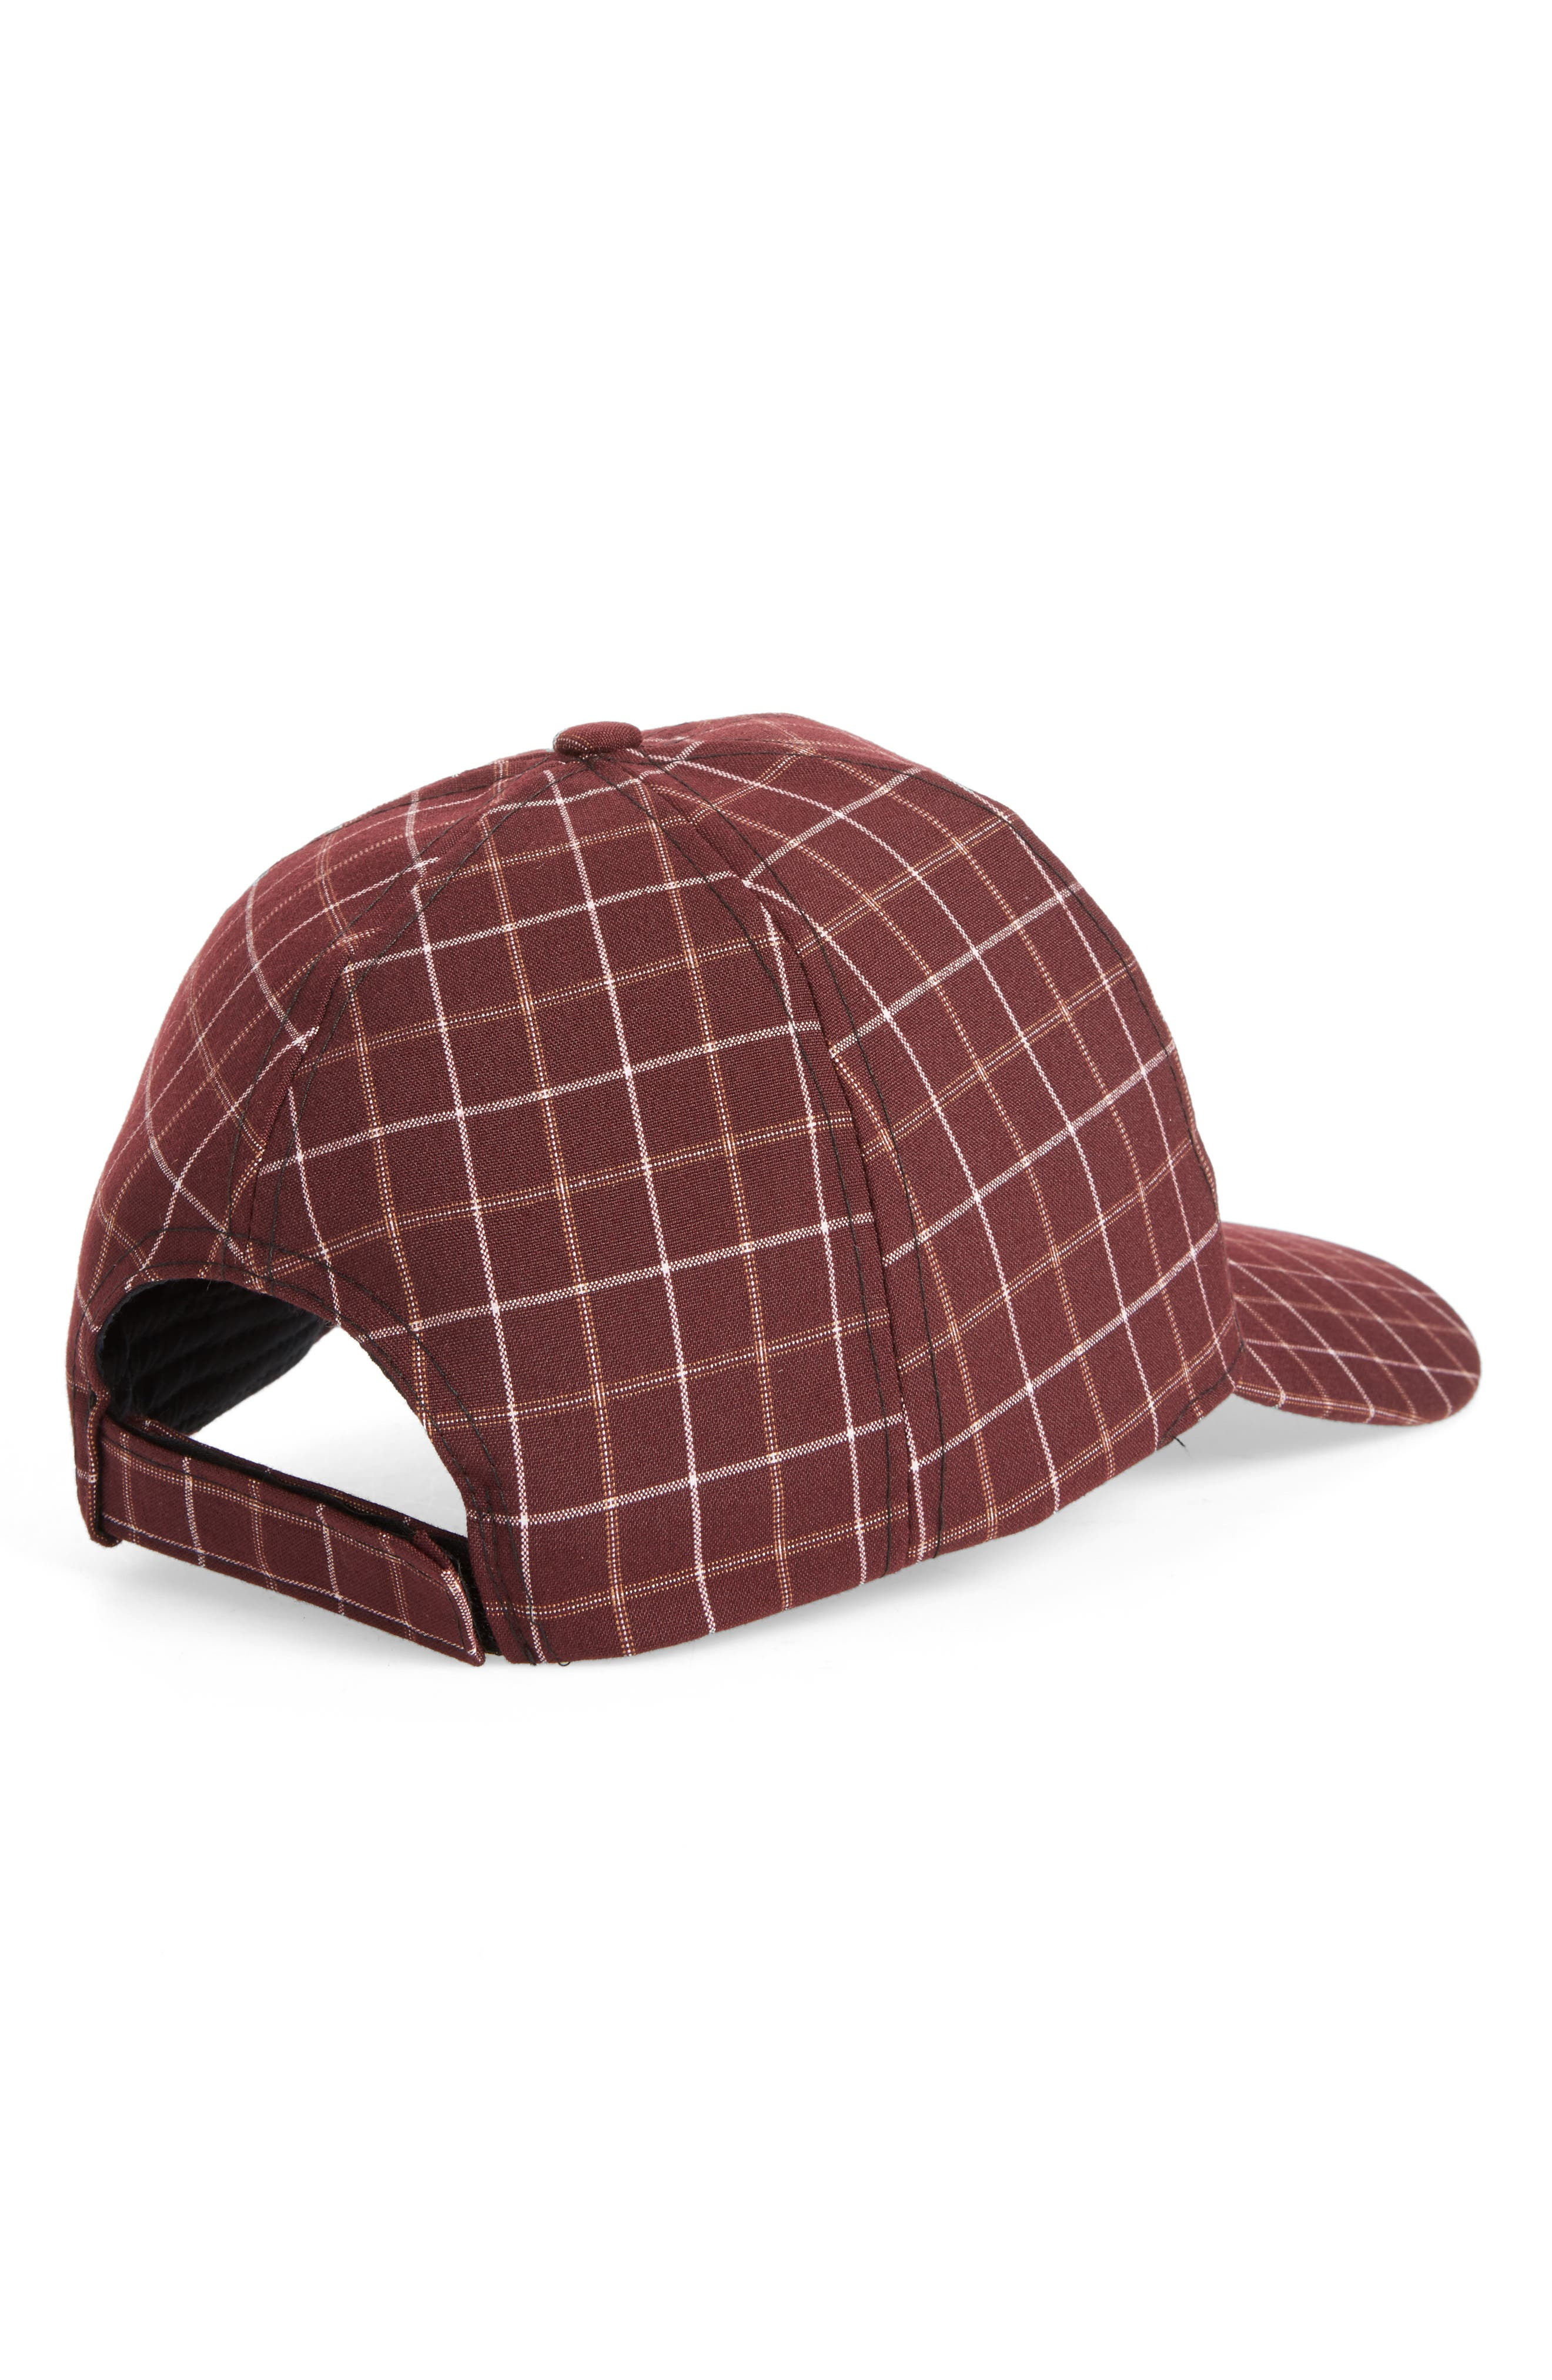 Windowpane Baseball Cap,                             Alternate thumbnail 2, color,